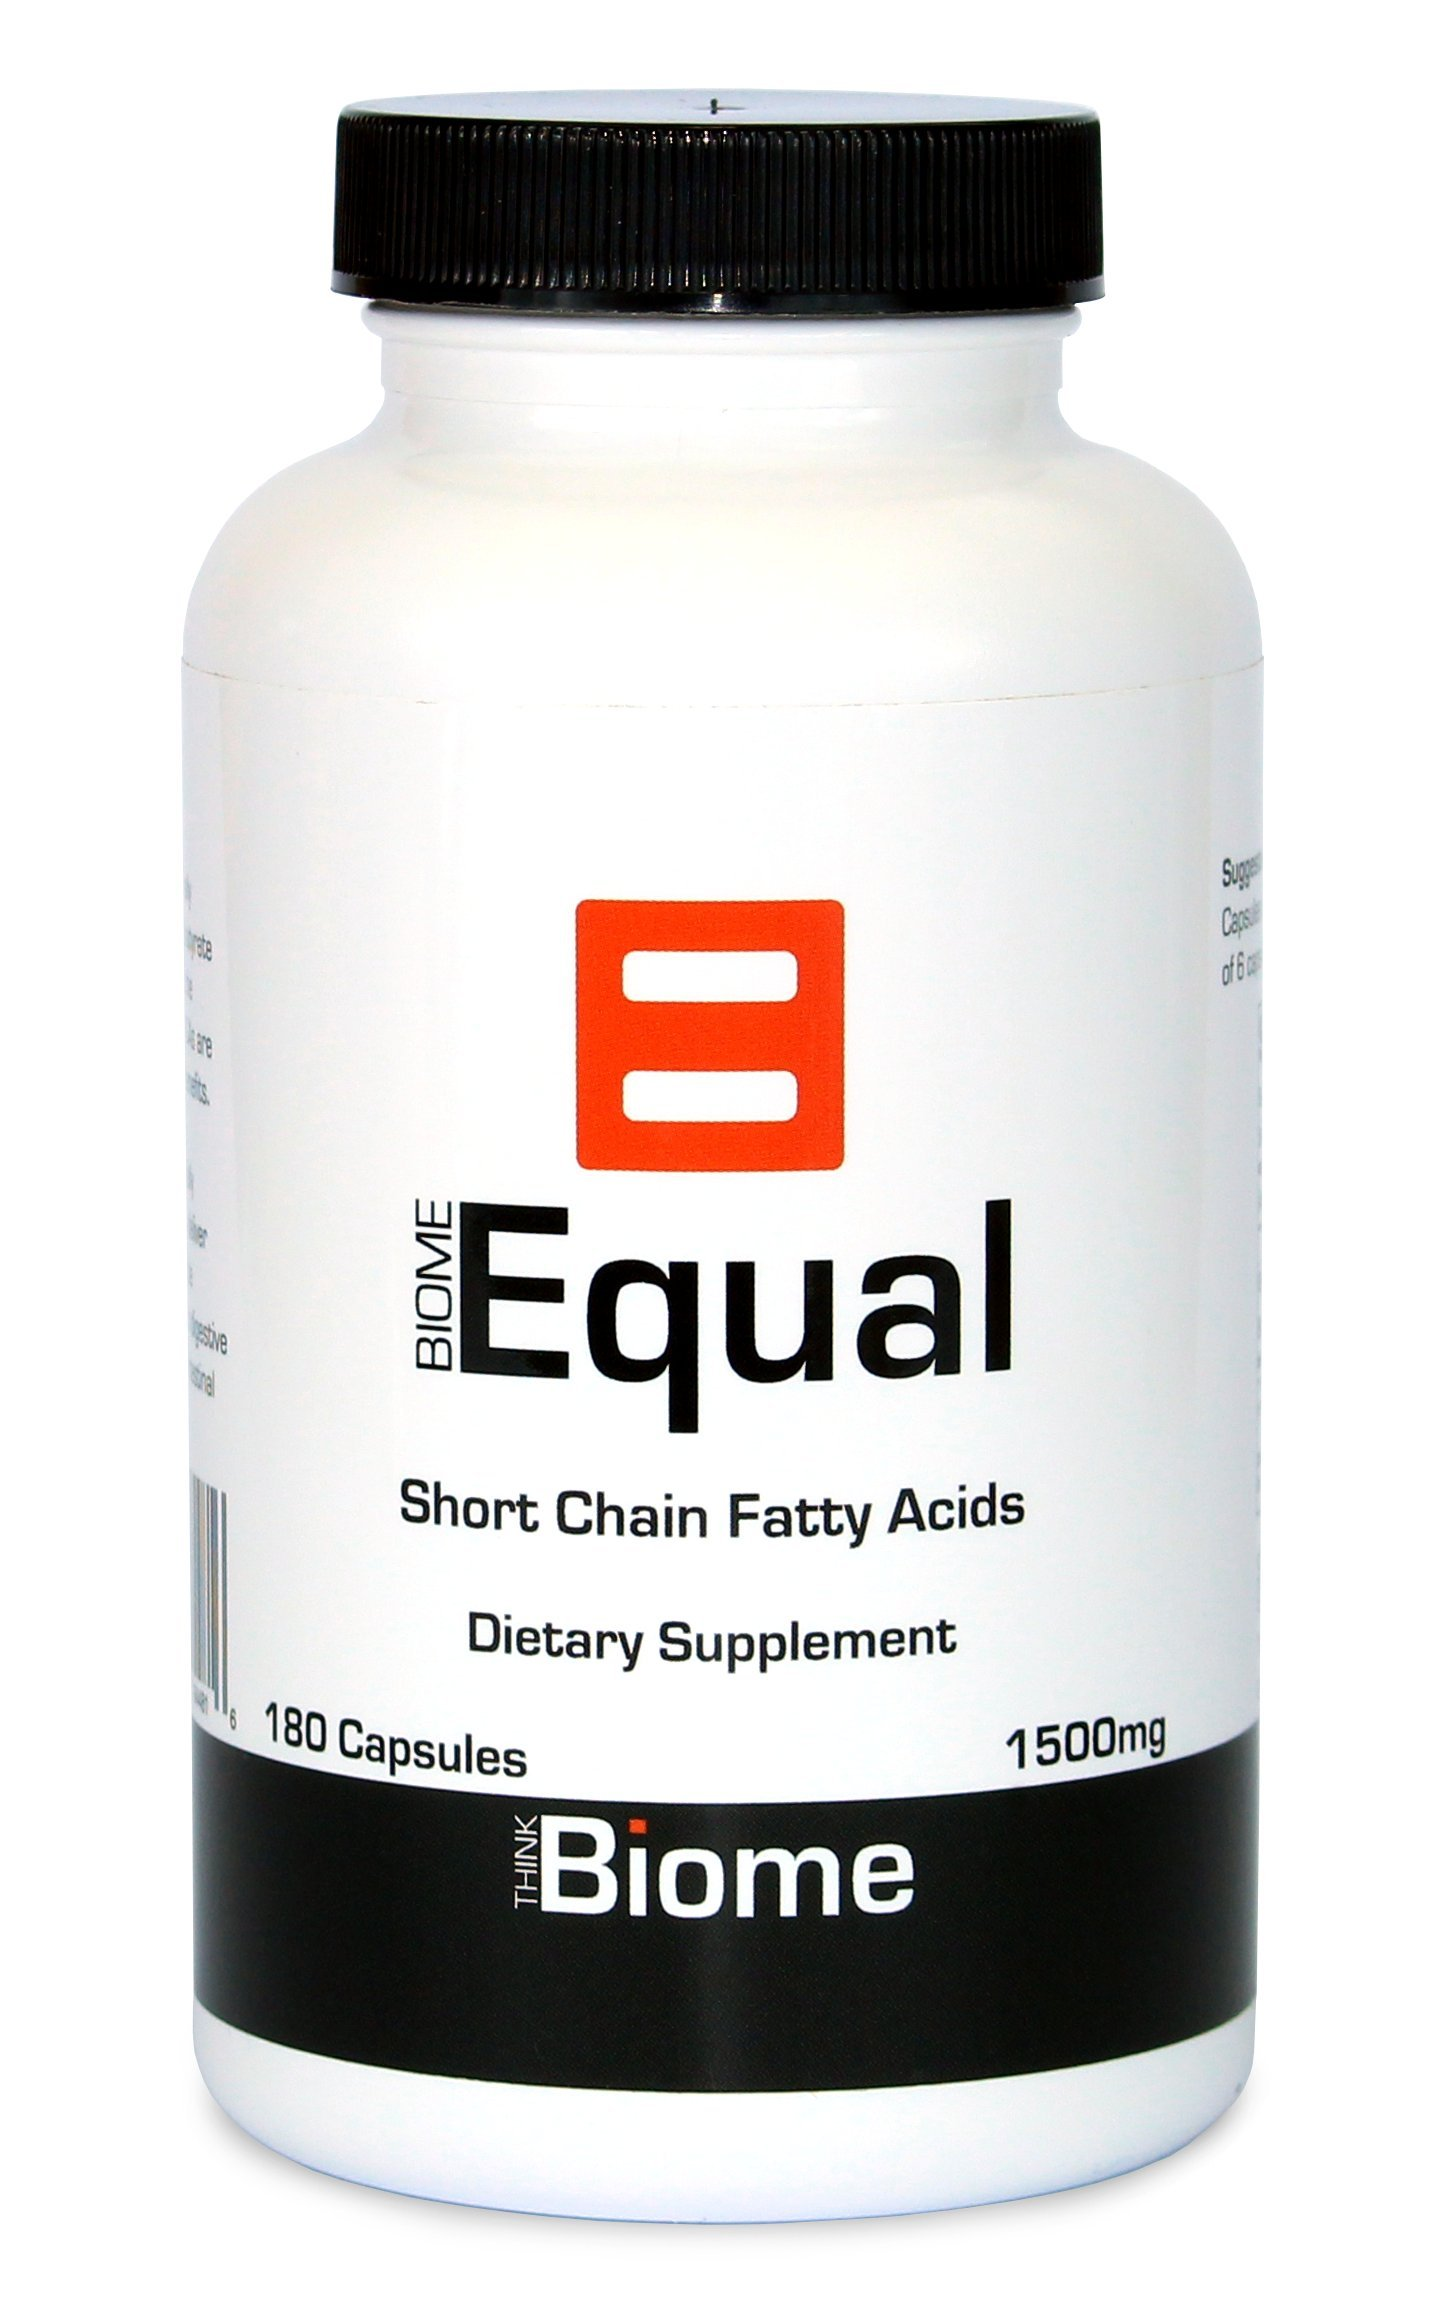 Biome Equal Butyrate Complete Postbiotic - Short chain fatty acids - 1500mg 180 Caps - ThinkBiome by THINK BIOME